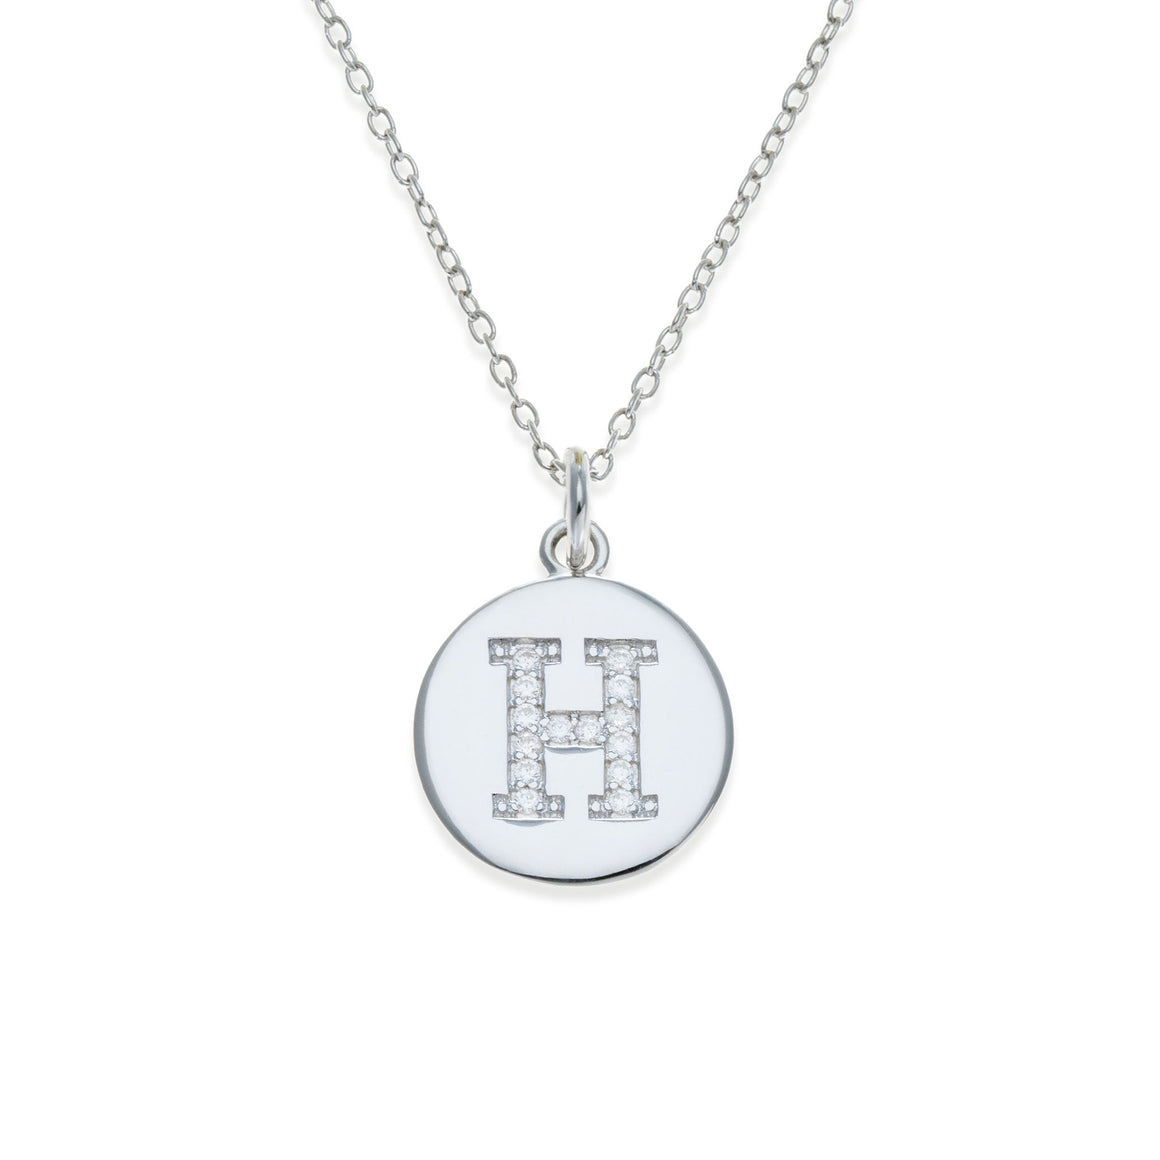 Sterling Silver Initial Necklace - H | Kith & Kin | It's Personal Collection